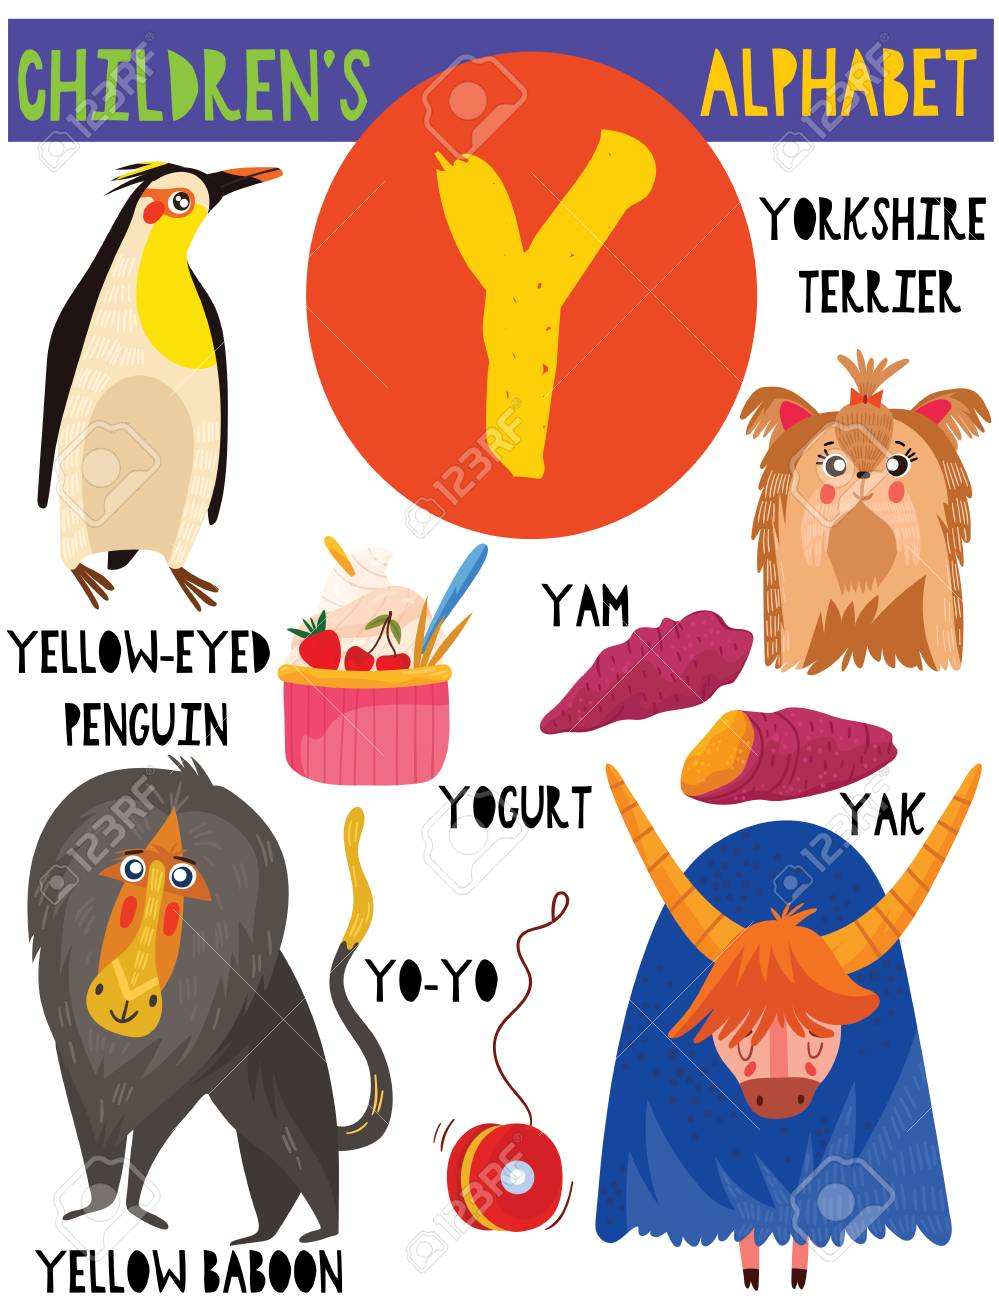 Letter Y Cute Children S Alphabet With Adorable Animals And Other Royalty Free Cliparts Vectors And Stock Illustration Image 112754833